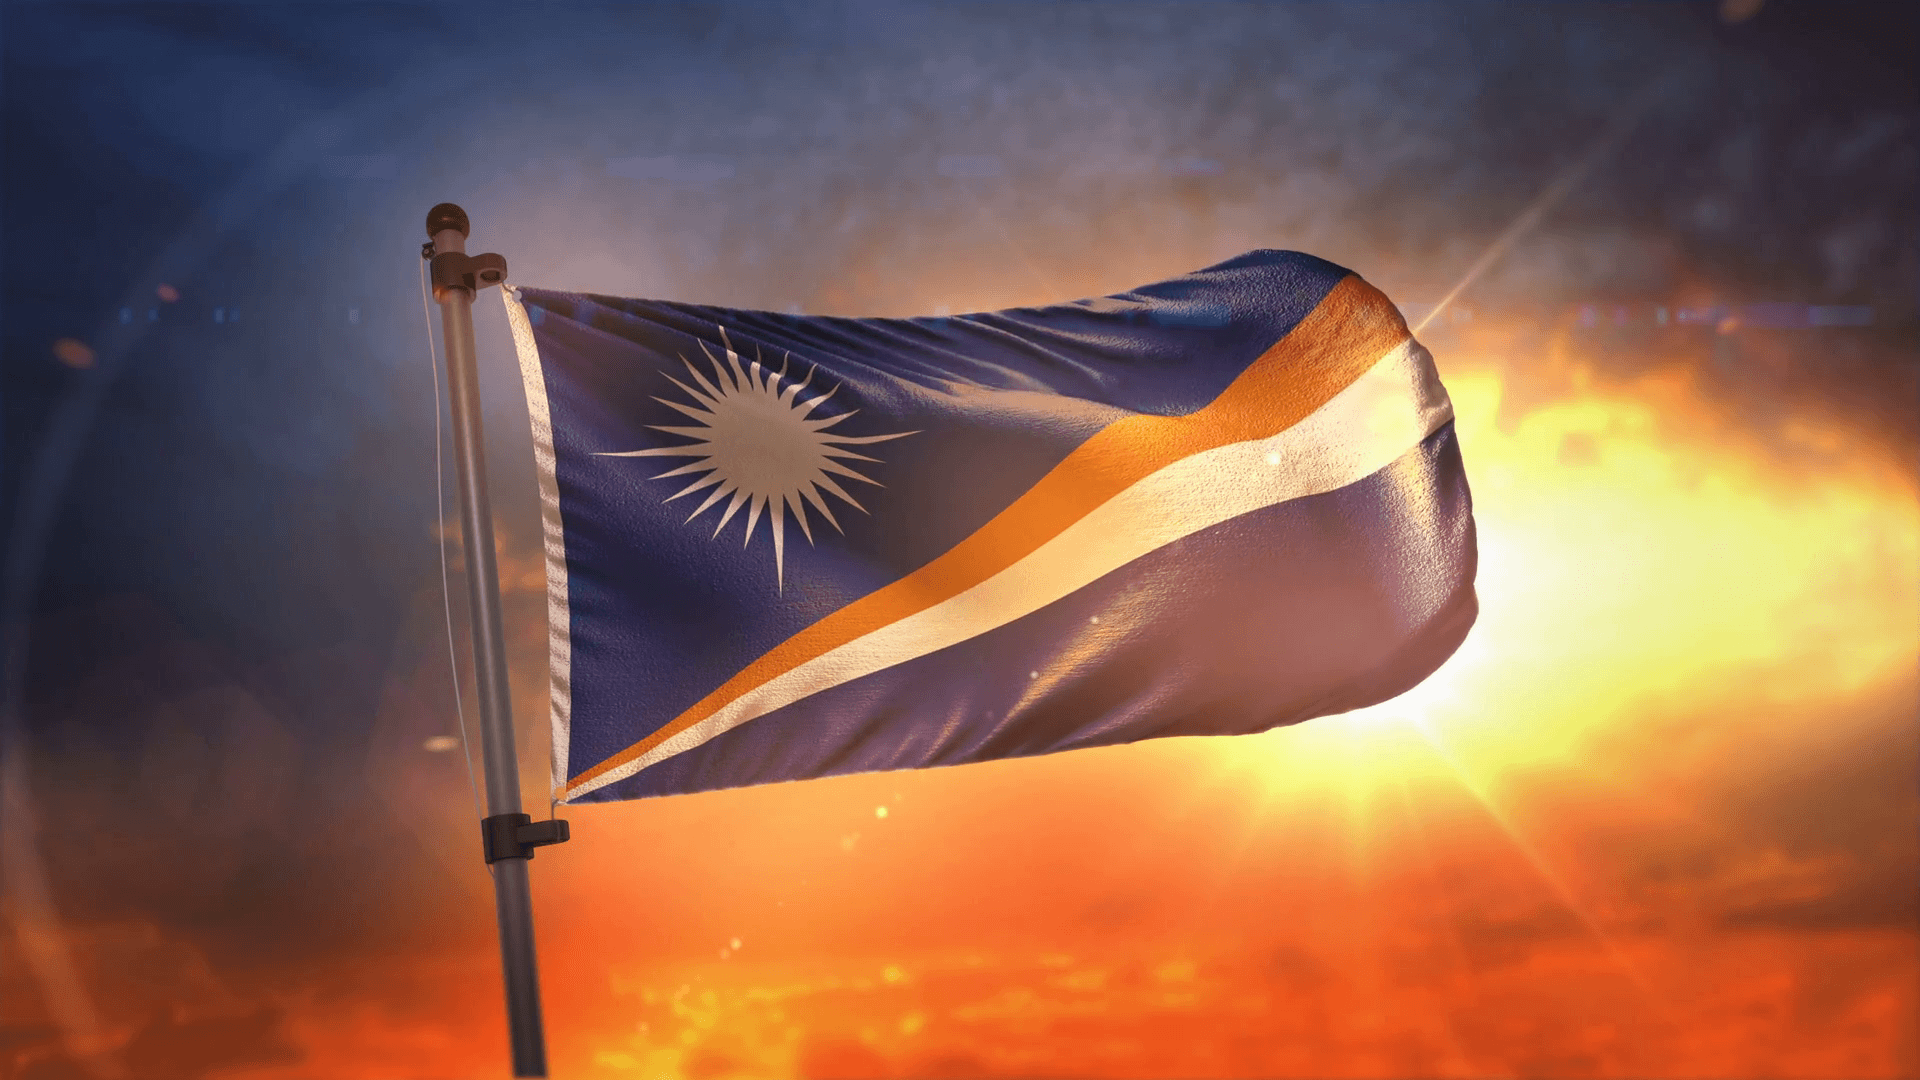 Marshall Islands Flag Picture | www.tollebild.com